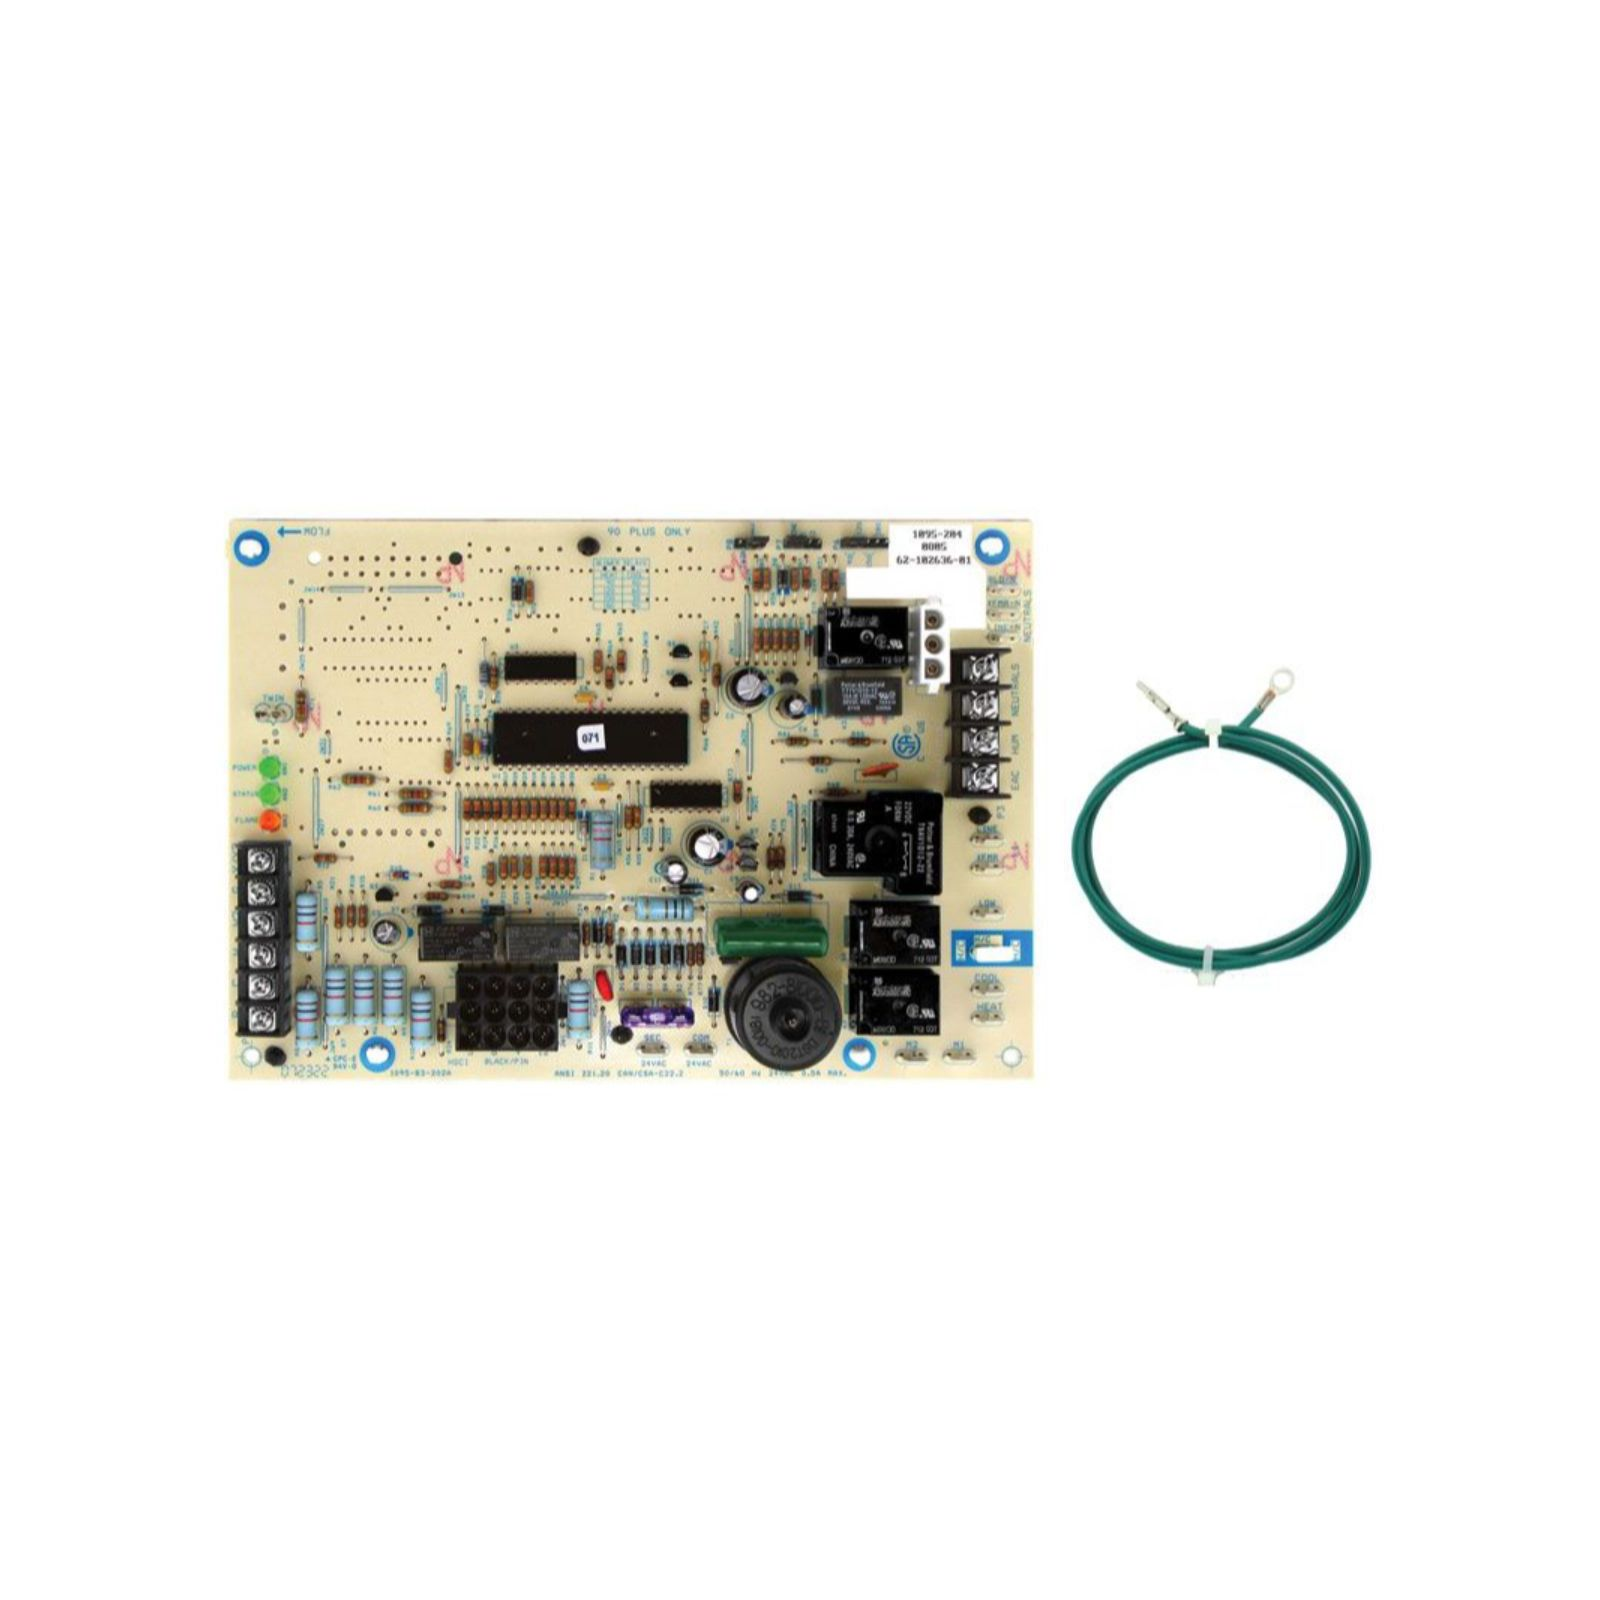 Rheem 62-102636-81 -   Integrated Furnace Control Board (IFC)